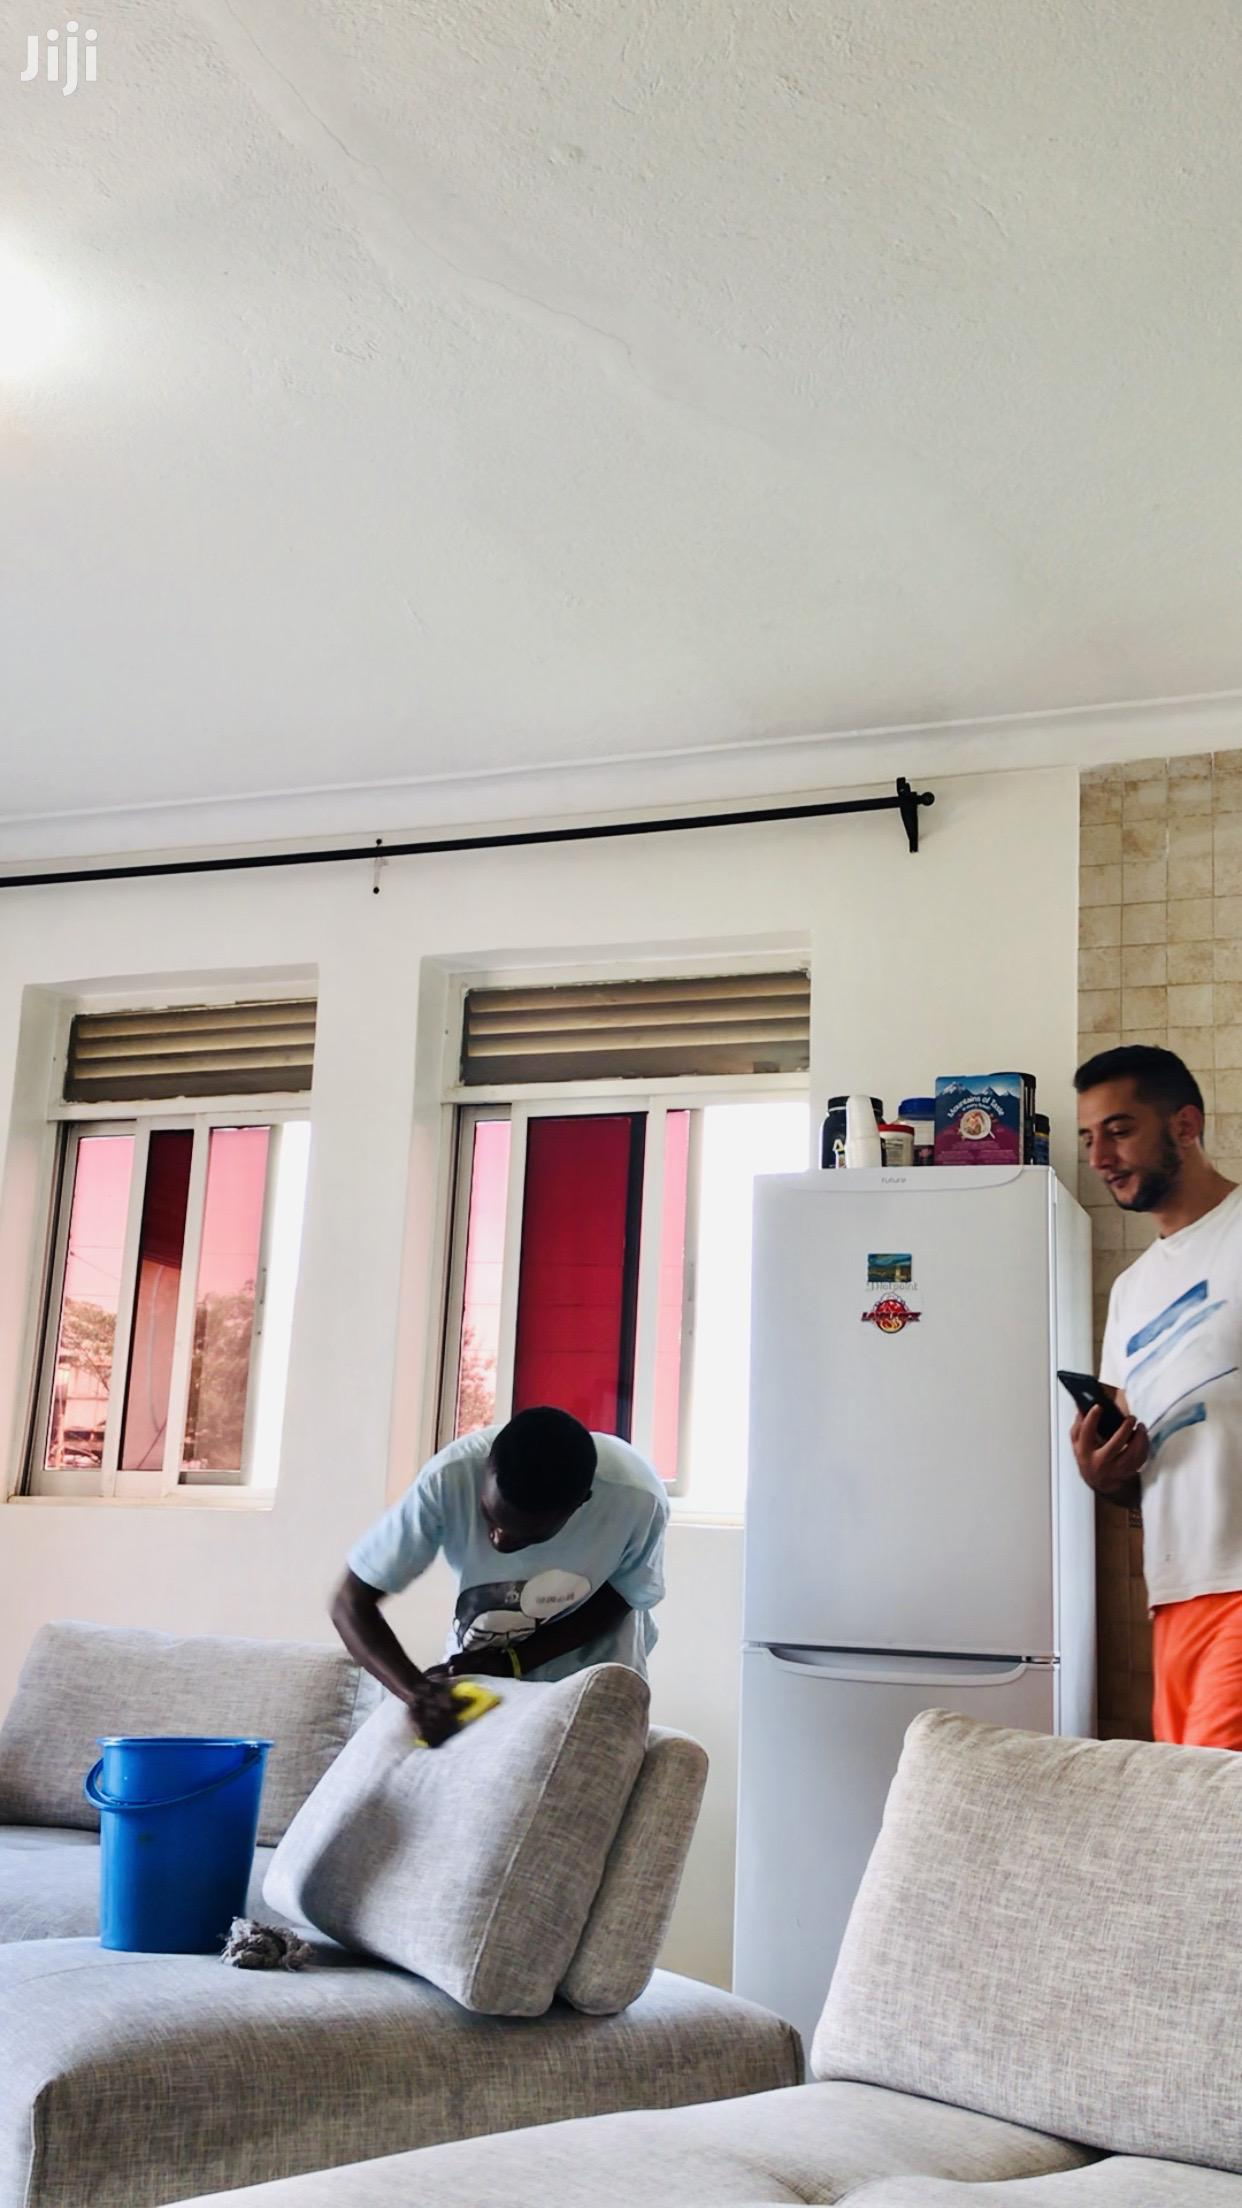 Sofa And Carpets Cleaning Service | Cleaning Services for sale in Kampala, Central Region, Uganda